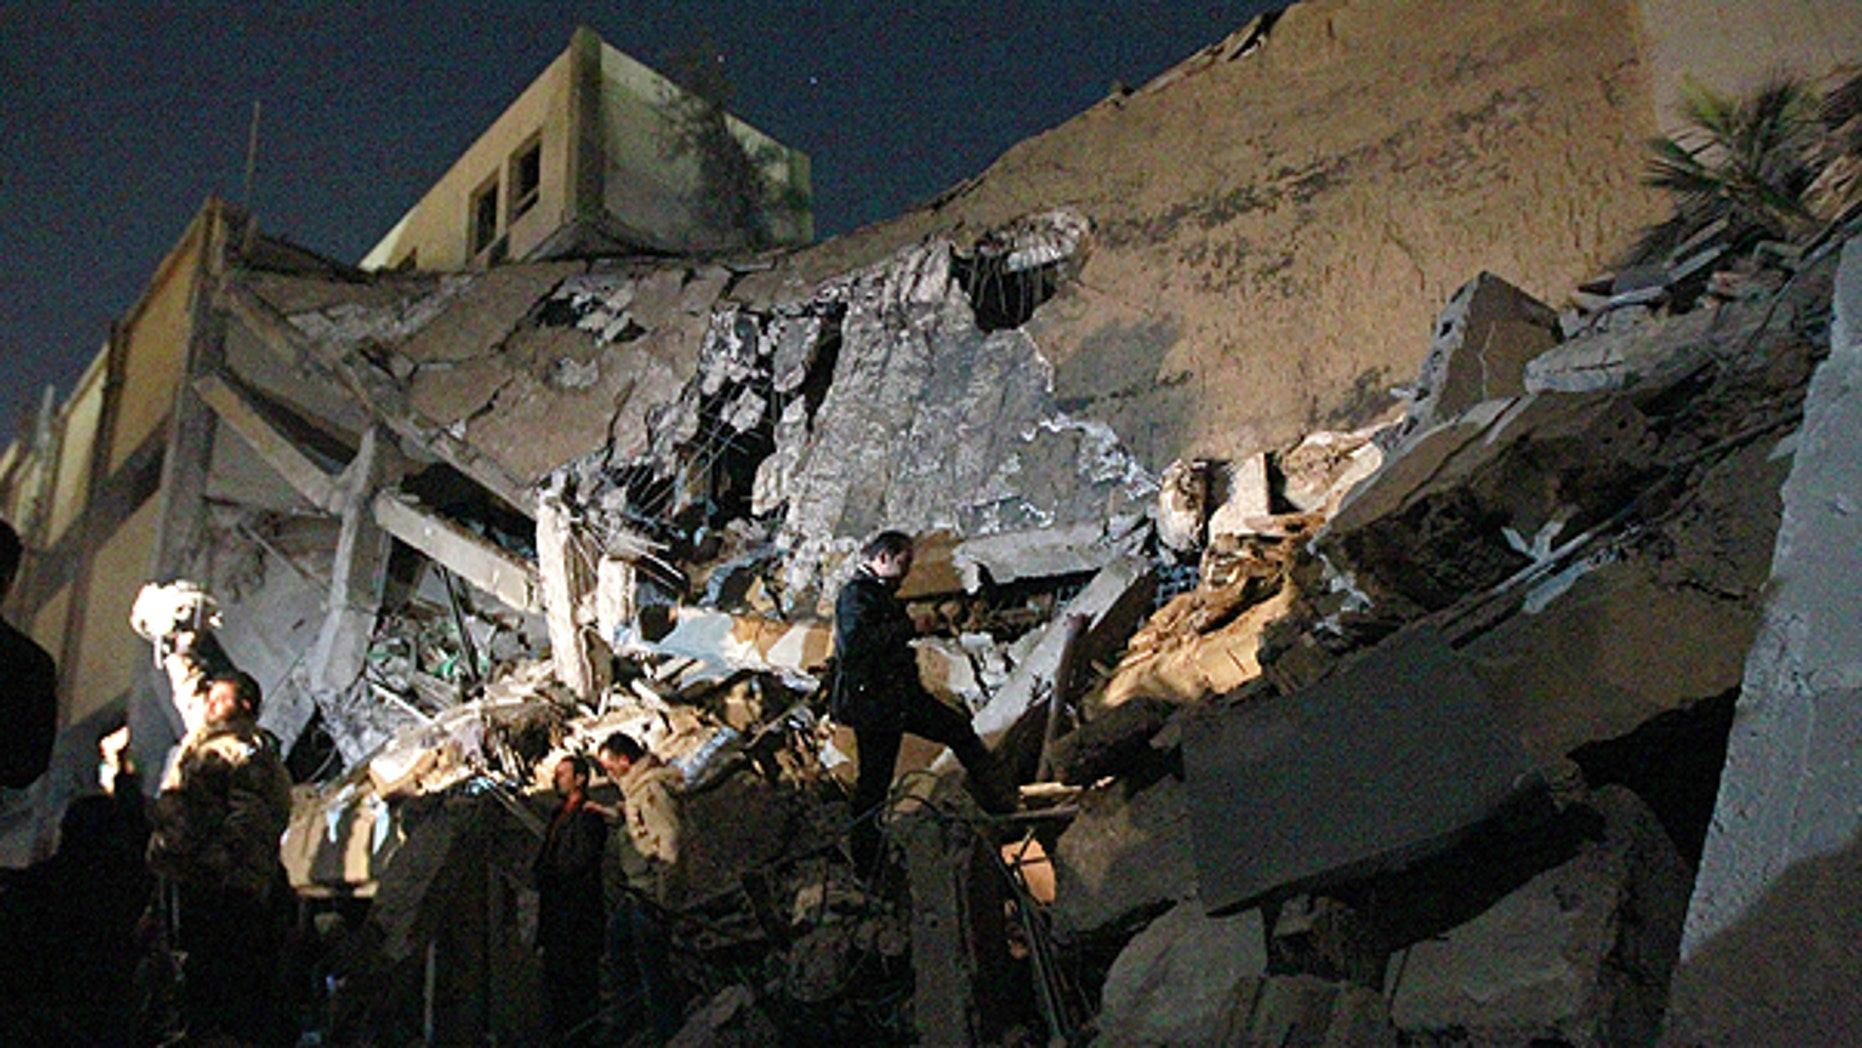 March 21: Libyan soldiers survey the damage to an administrative building hit by a missile late Sunday in the heart of Muammar al-Qaddafi's Bab Al Azizia compound in Tripoli.